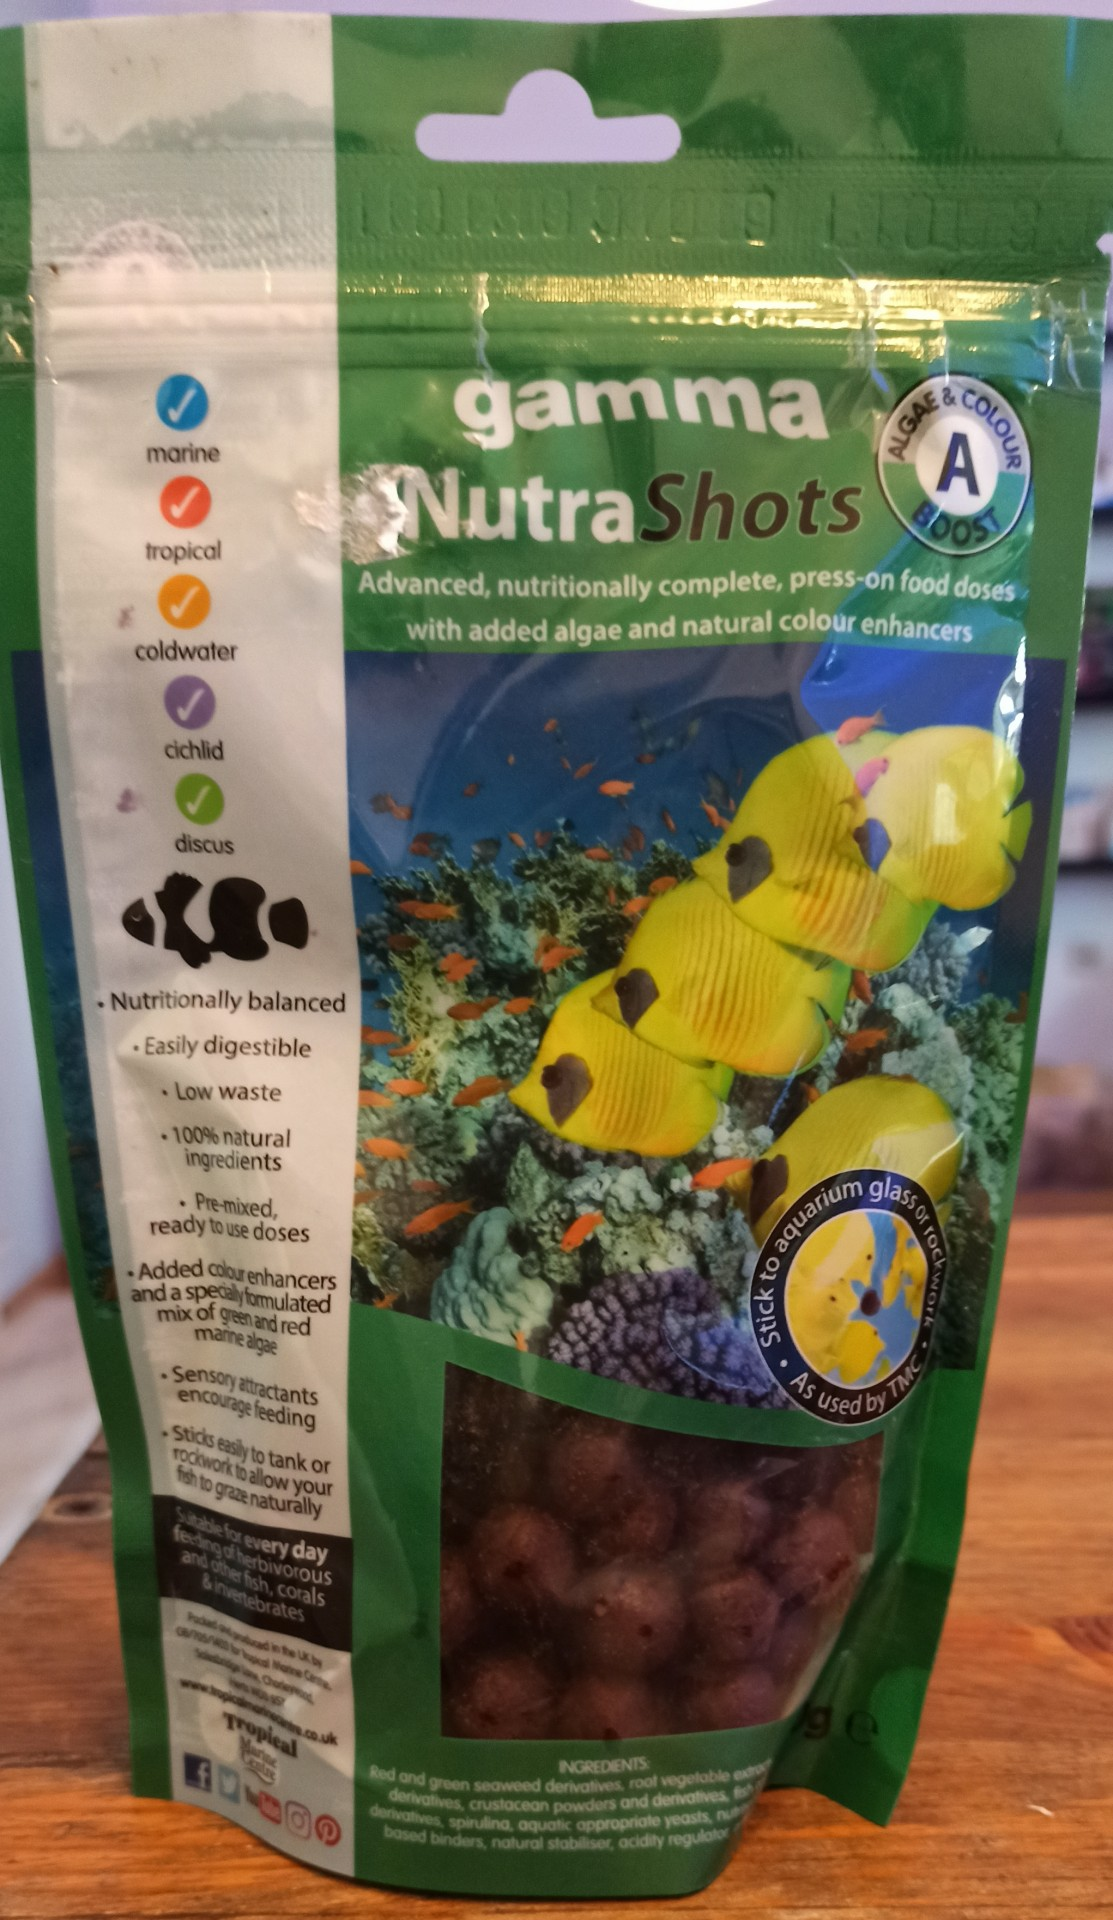 Gamma Nutra Shots A - Algae & Color Boost - 100g